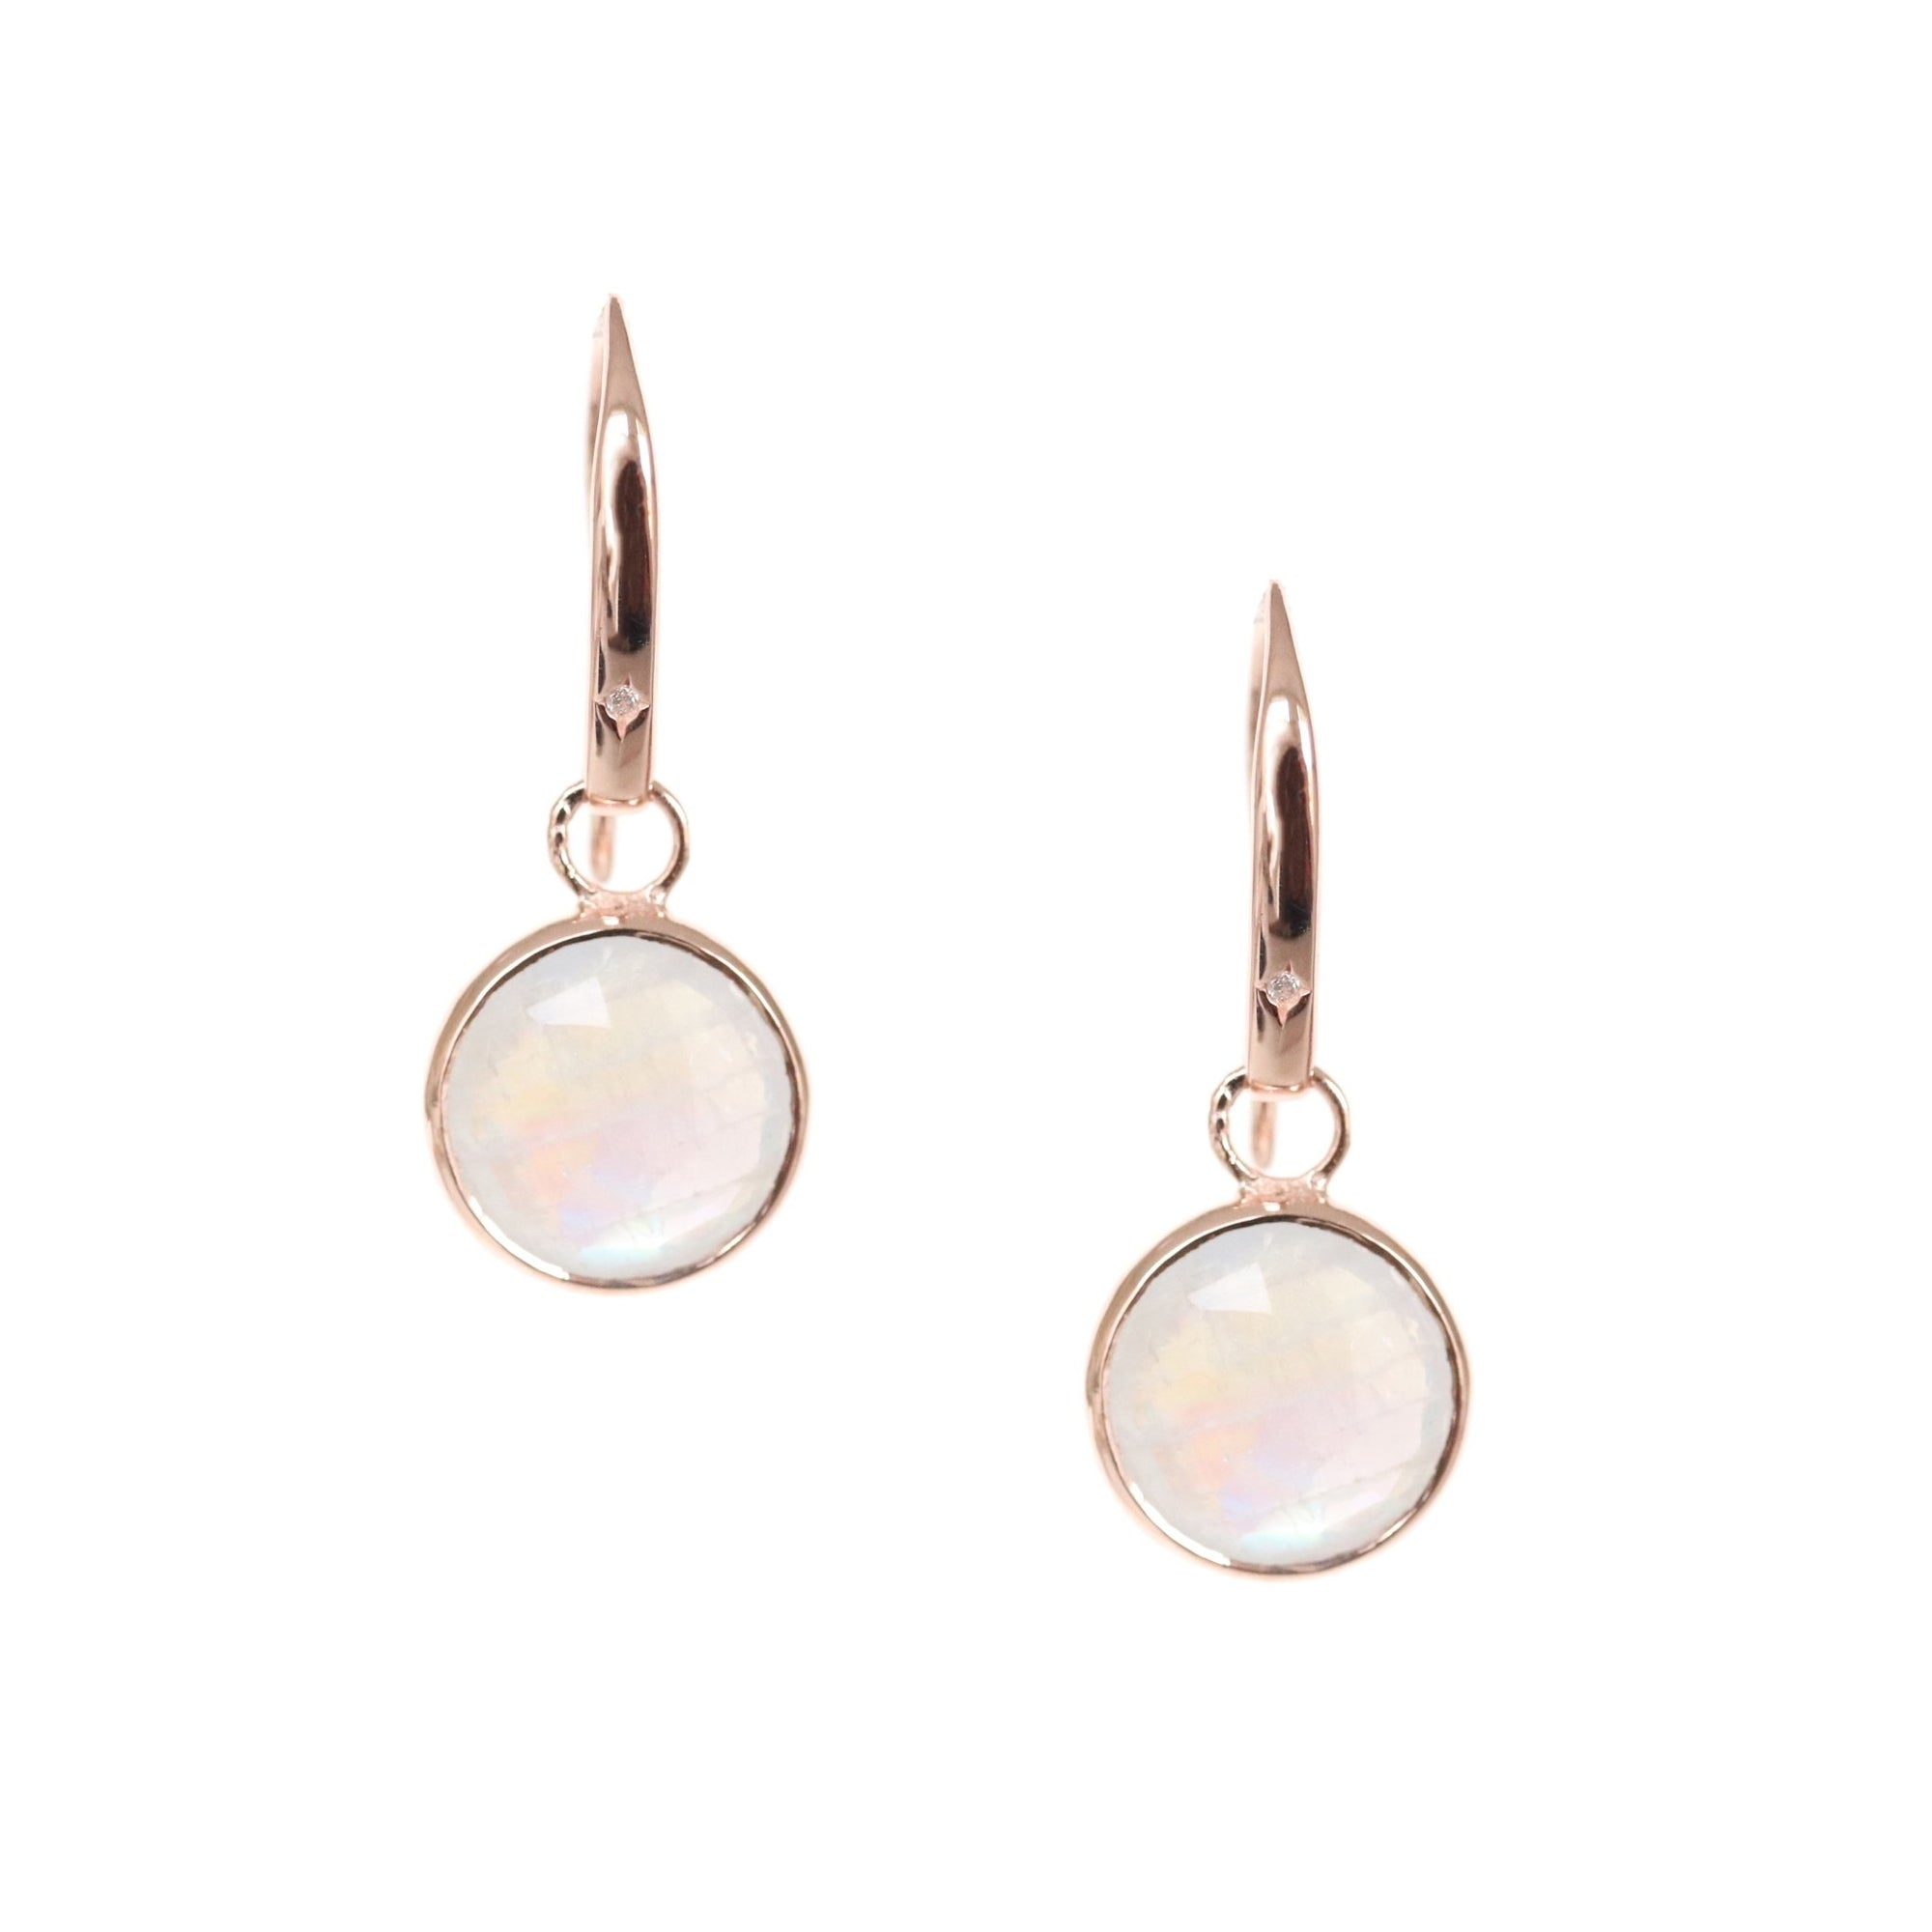 LEGACY DROP EARRINGS - RAINBOW MOONSTONE, CUBIC ZIRCONIA & ROSE GOLD - SO PRETTY CARA COTTER